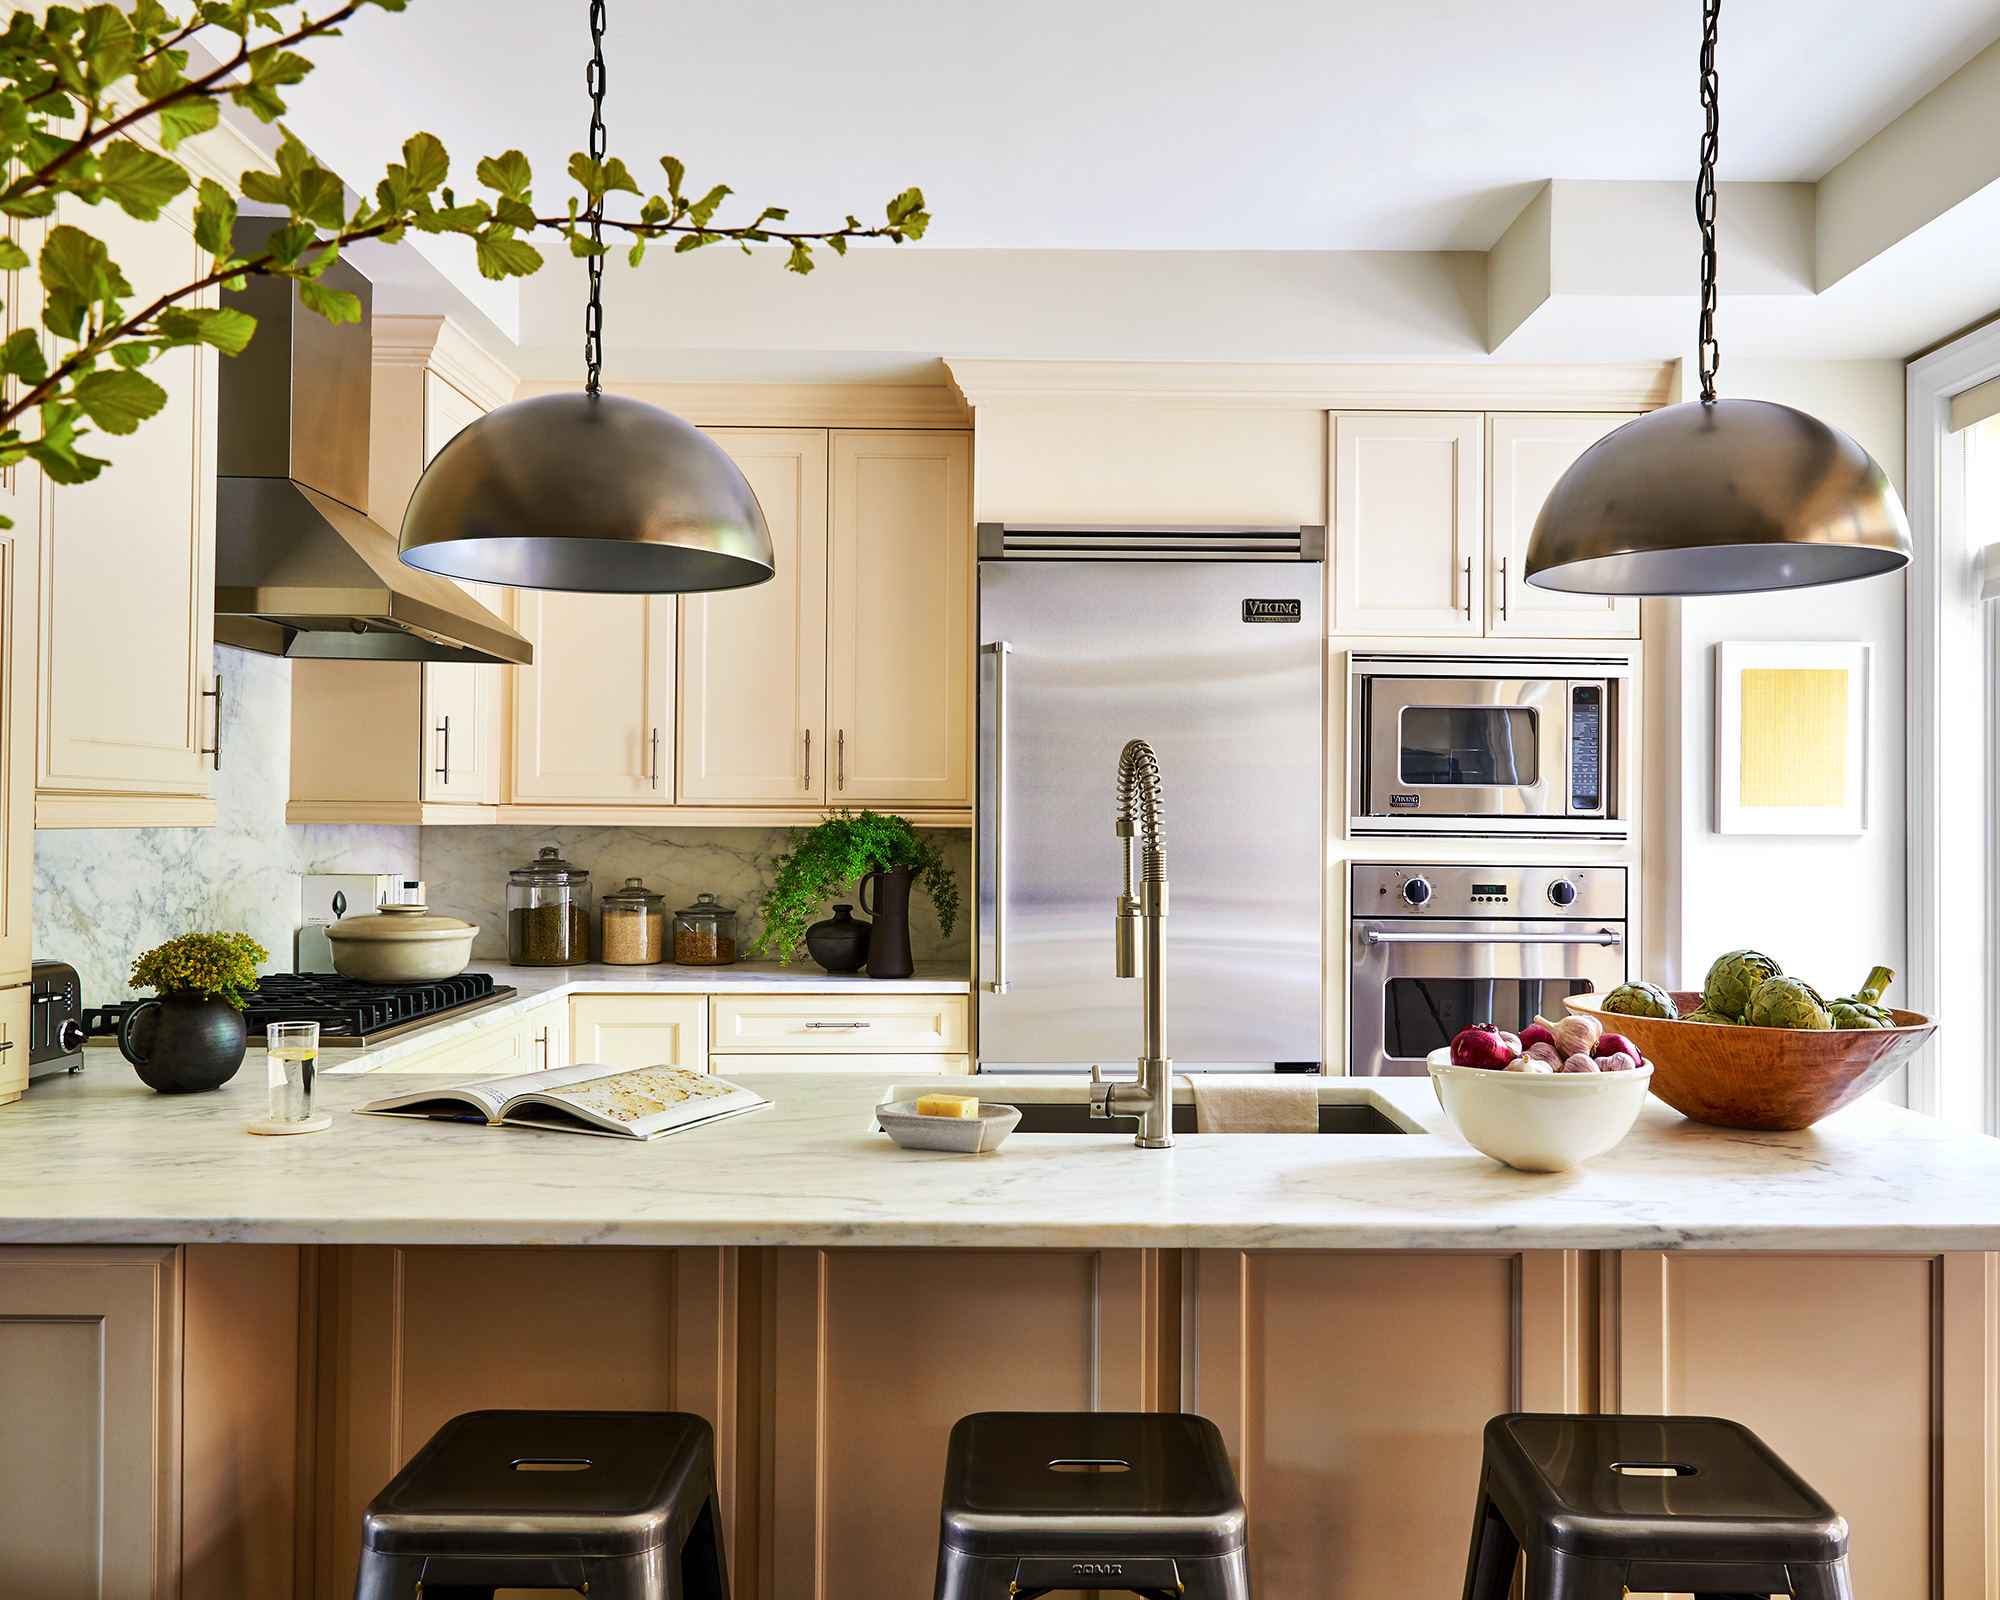 Kitchen design mistakes what not to do when designing a kitchen ...